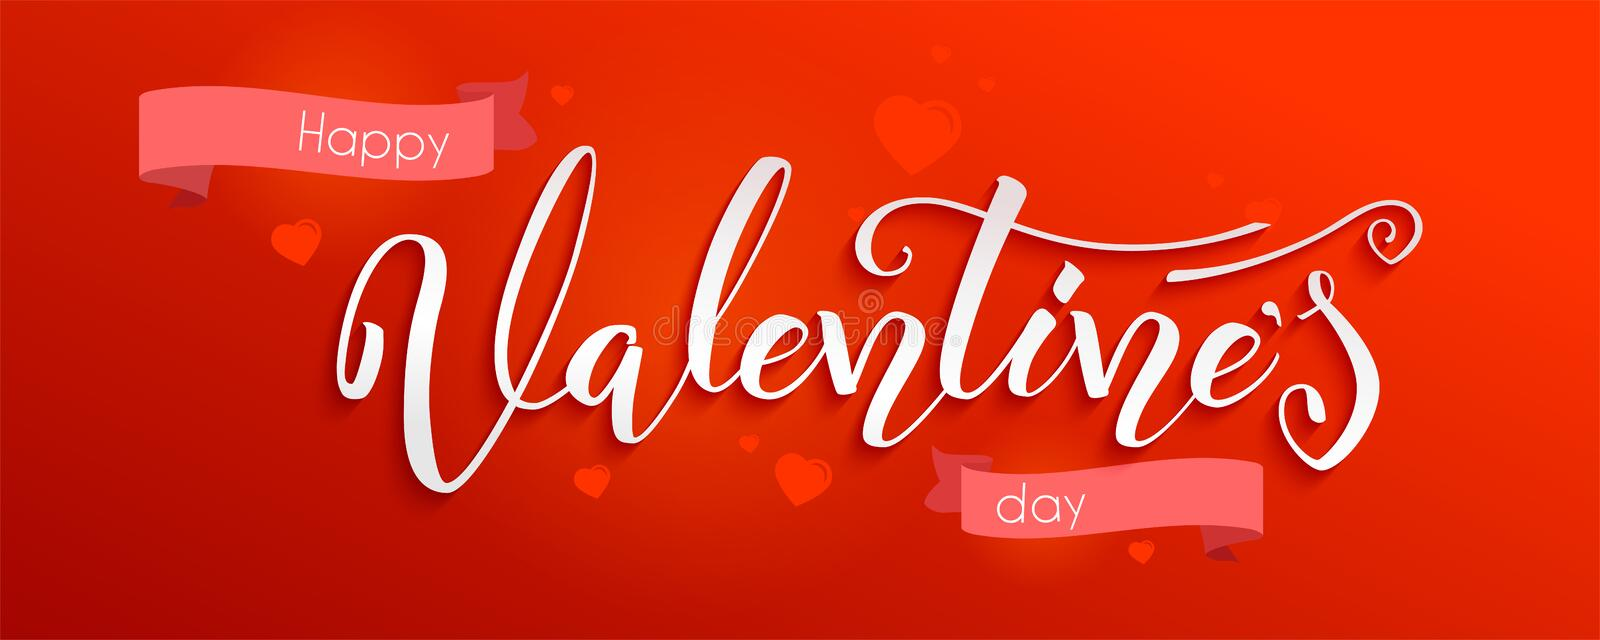 Valentine day. Holidays lettering, hand-drawn calligraphy on red background. Greetings with design of text and graphics vector illustration